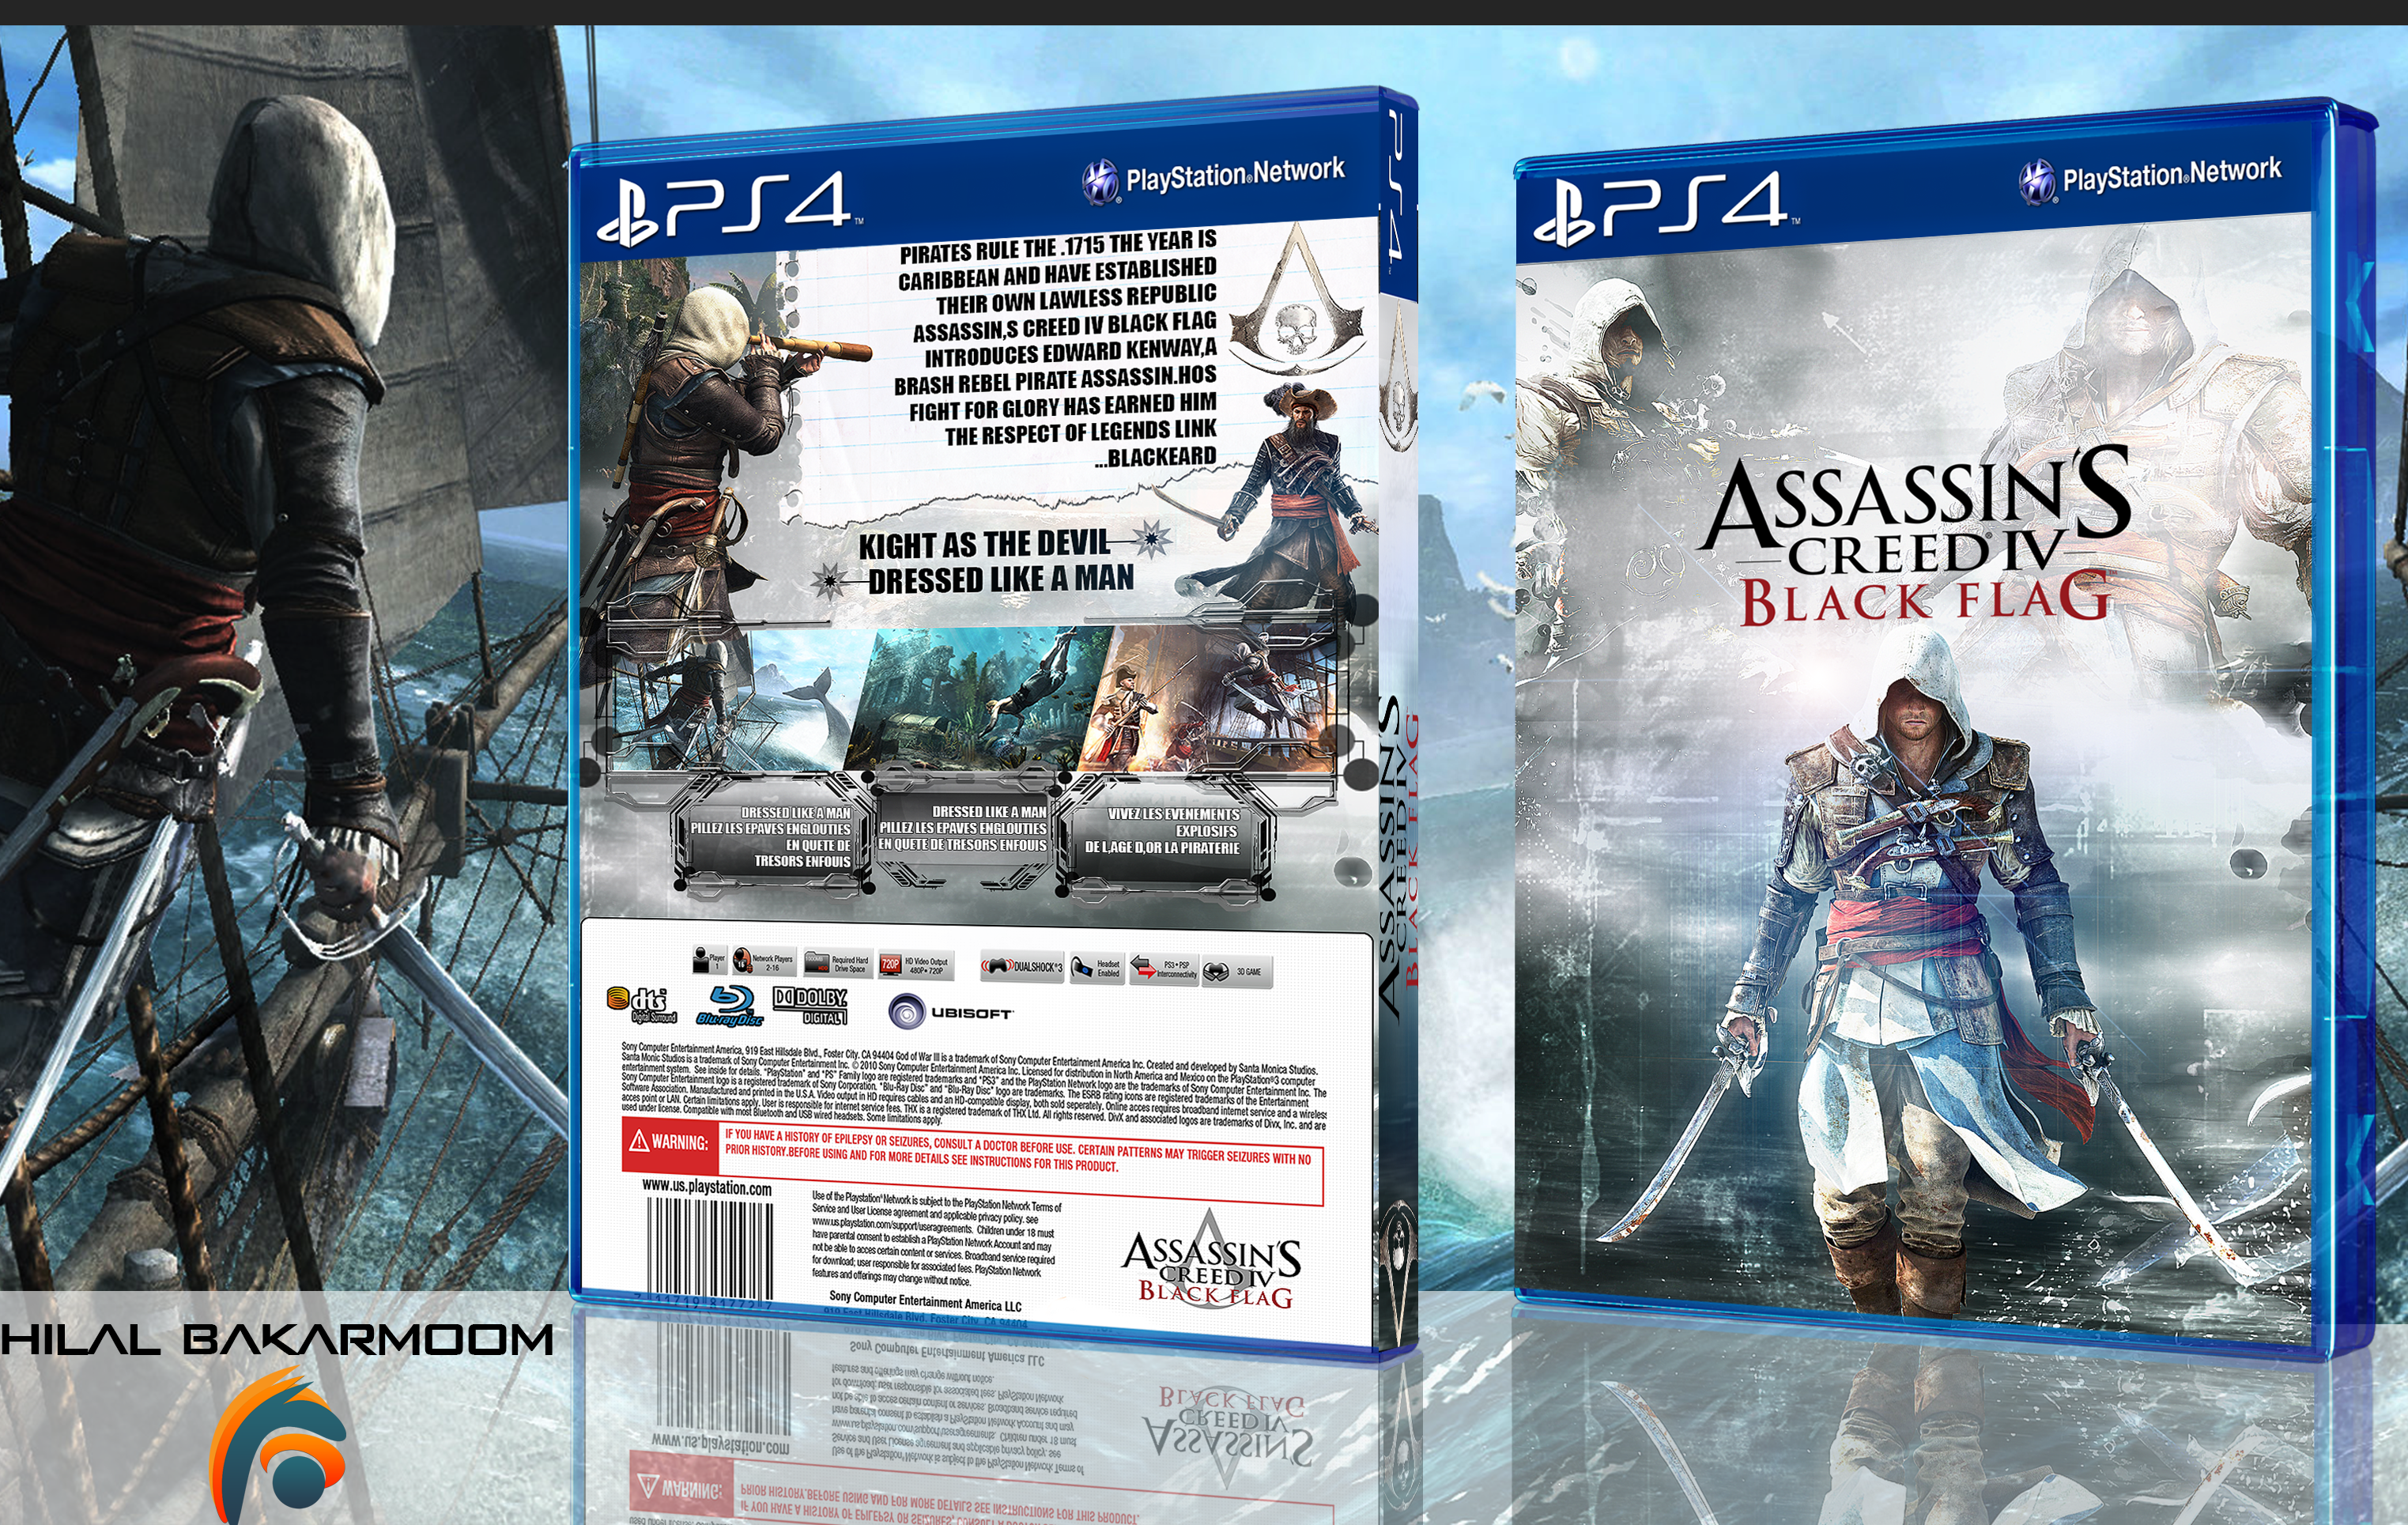 Assassin S Creed Iv Black Flag Box Cover Ps4 By Hohogfx On Deviantart